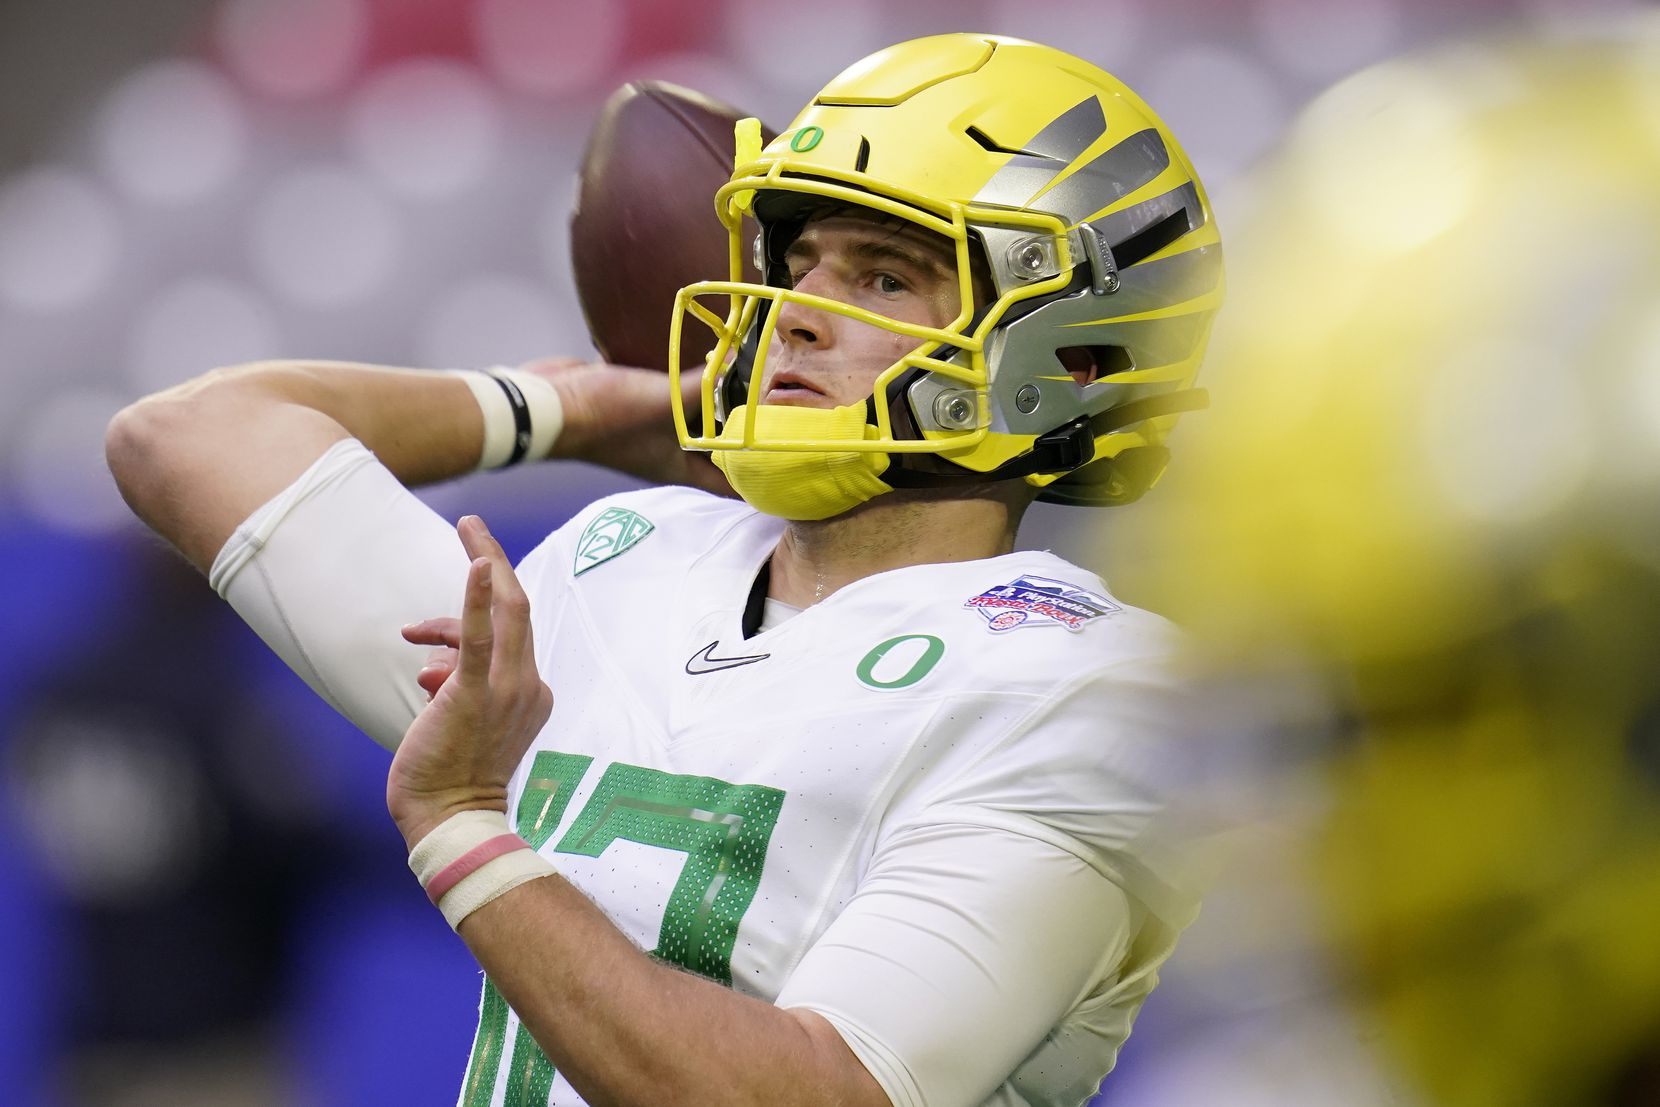 Oregon quarterback Tyler Shough (12) warms up prior to the Fiesta Bowl NCAA college football game against Iowa State, Saturday, Jan. 2, 2021, in Glendale, Ariz.